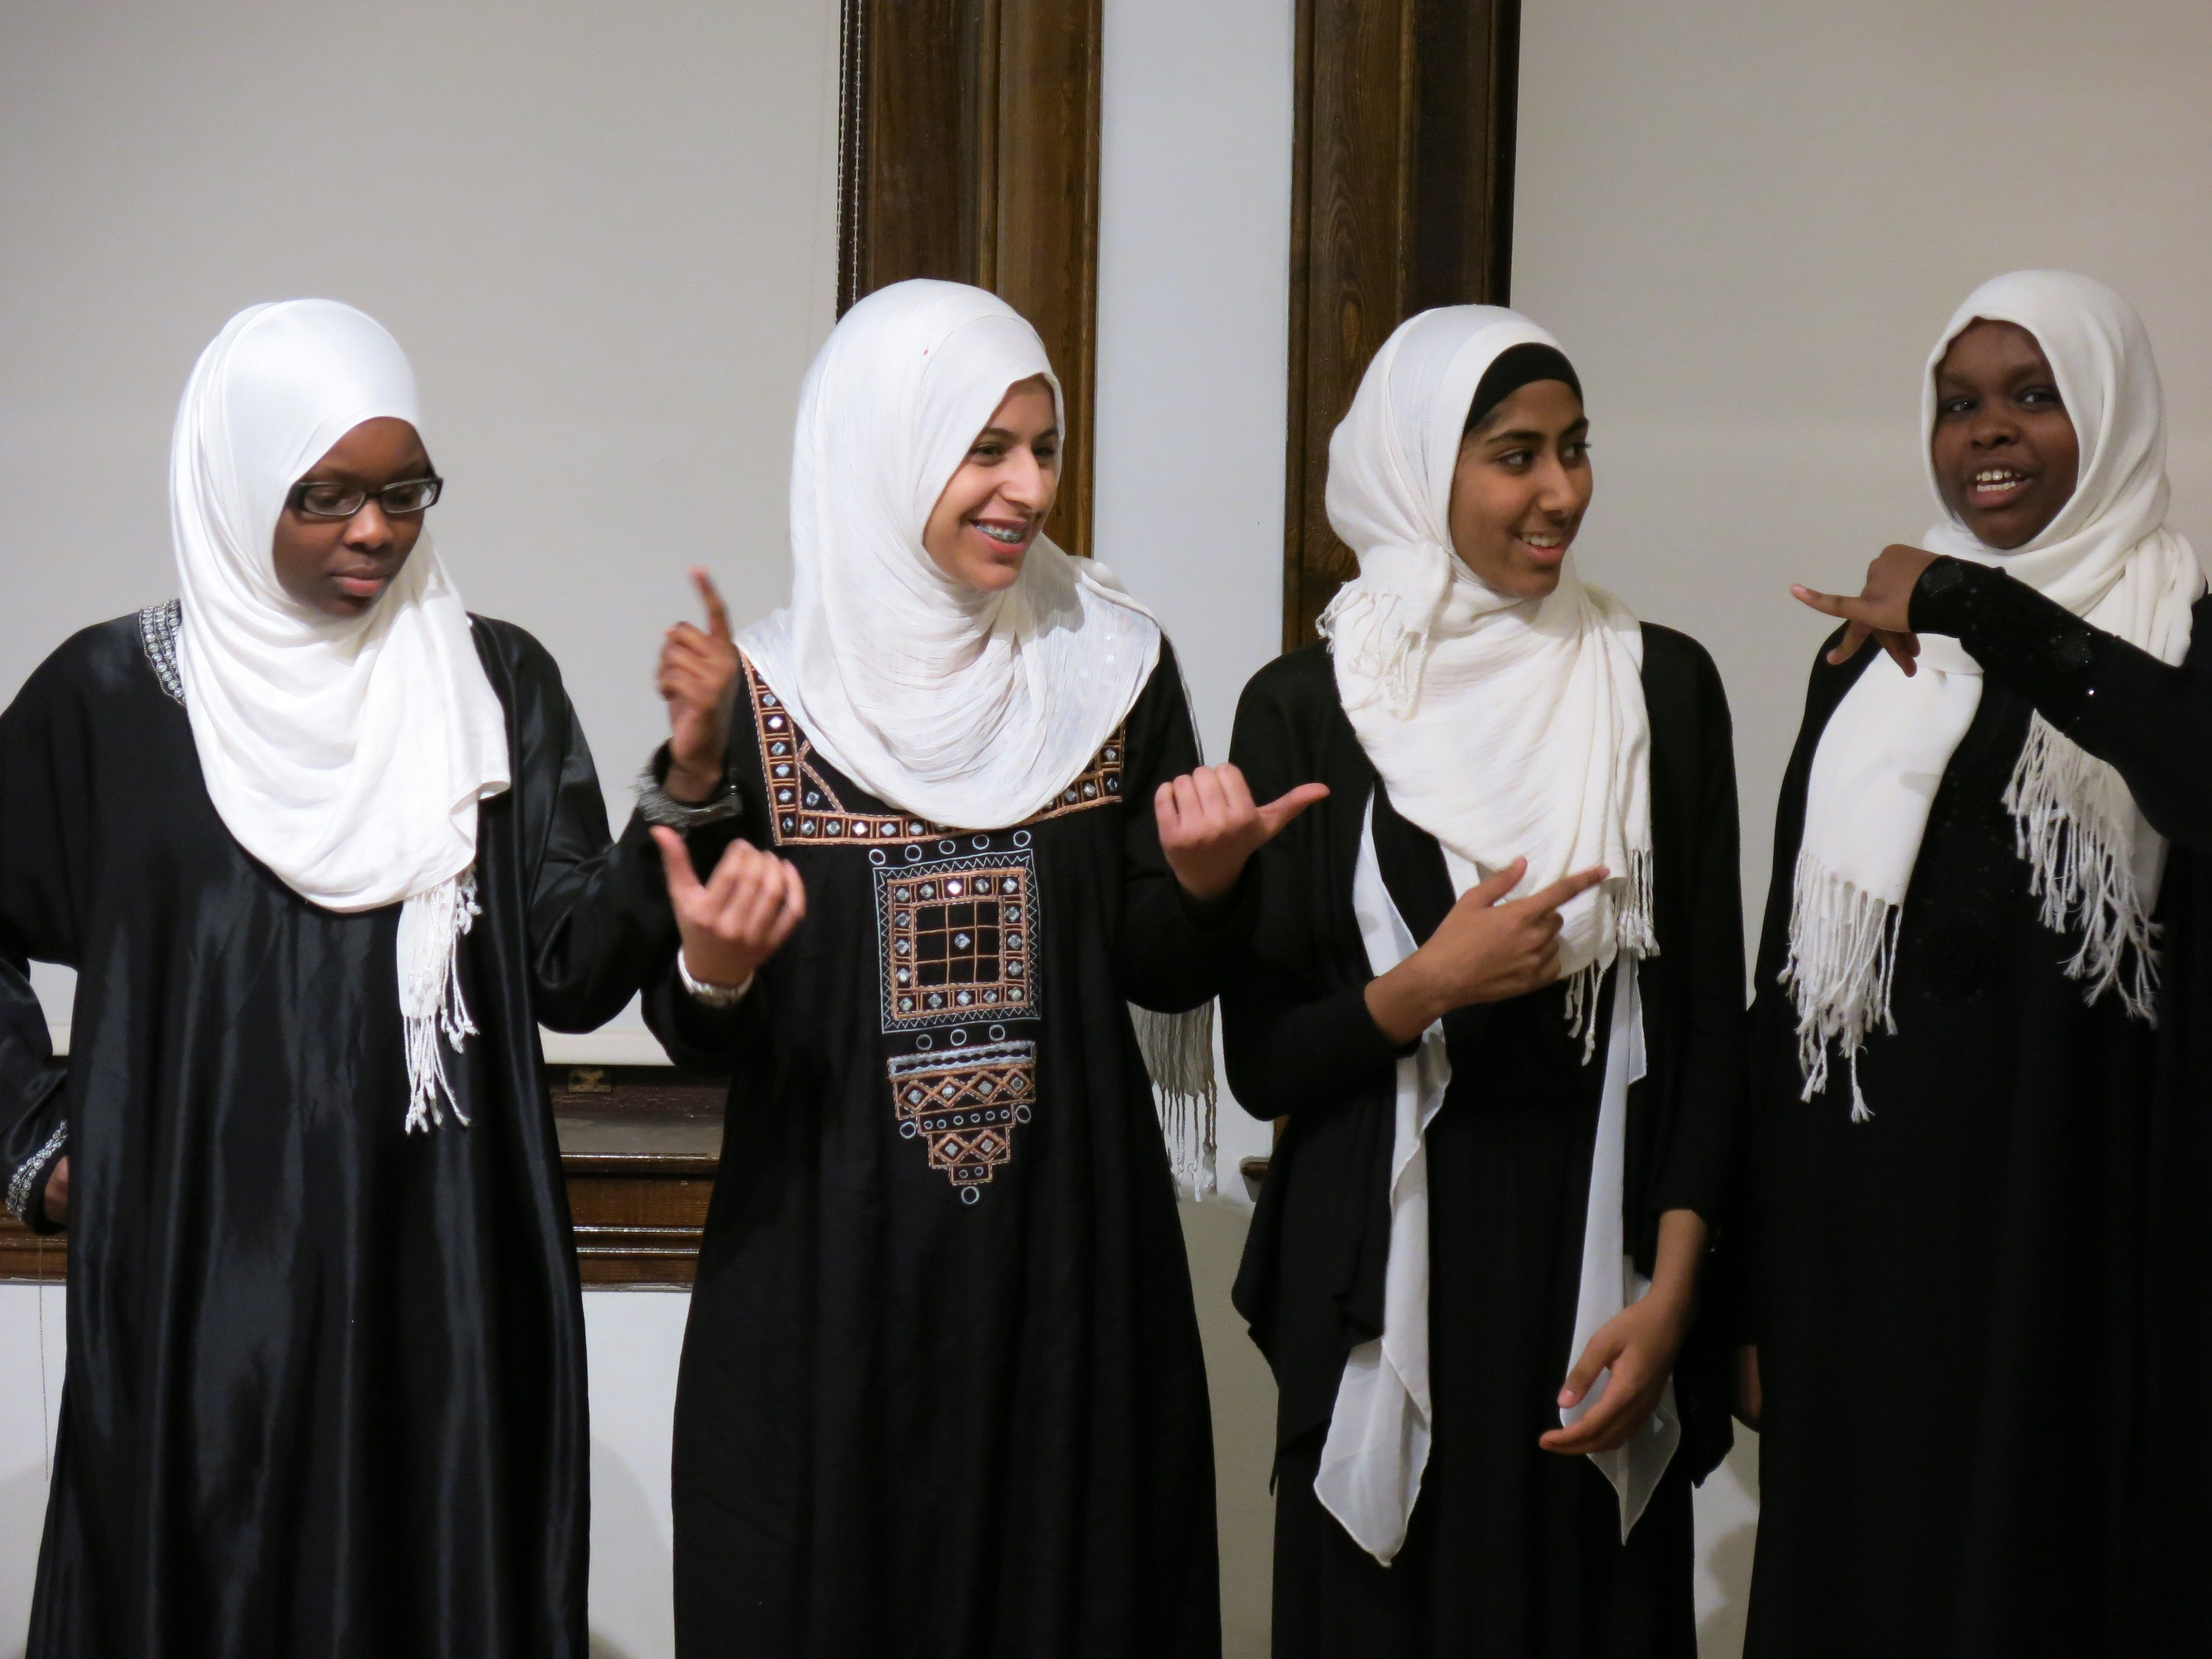 burlington junction muslim women dating site Meet single women in oak bluffs ma online & chat in the forums dhu is a 100% free dating site to find single women in oak bluffs coupon codes and printable coupons for grocery, online and restaurant businesses in oak bluffs, ma.